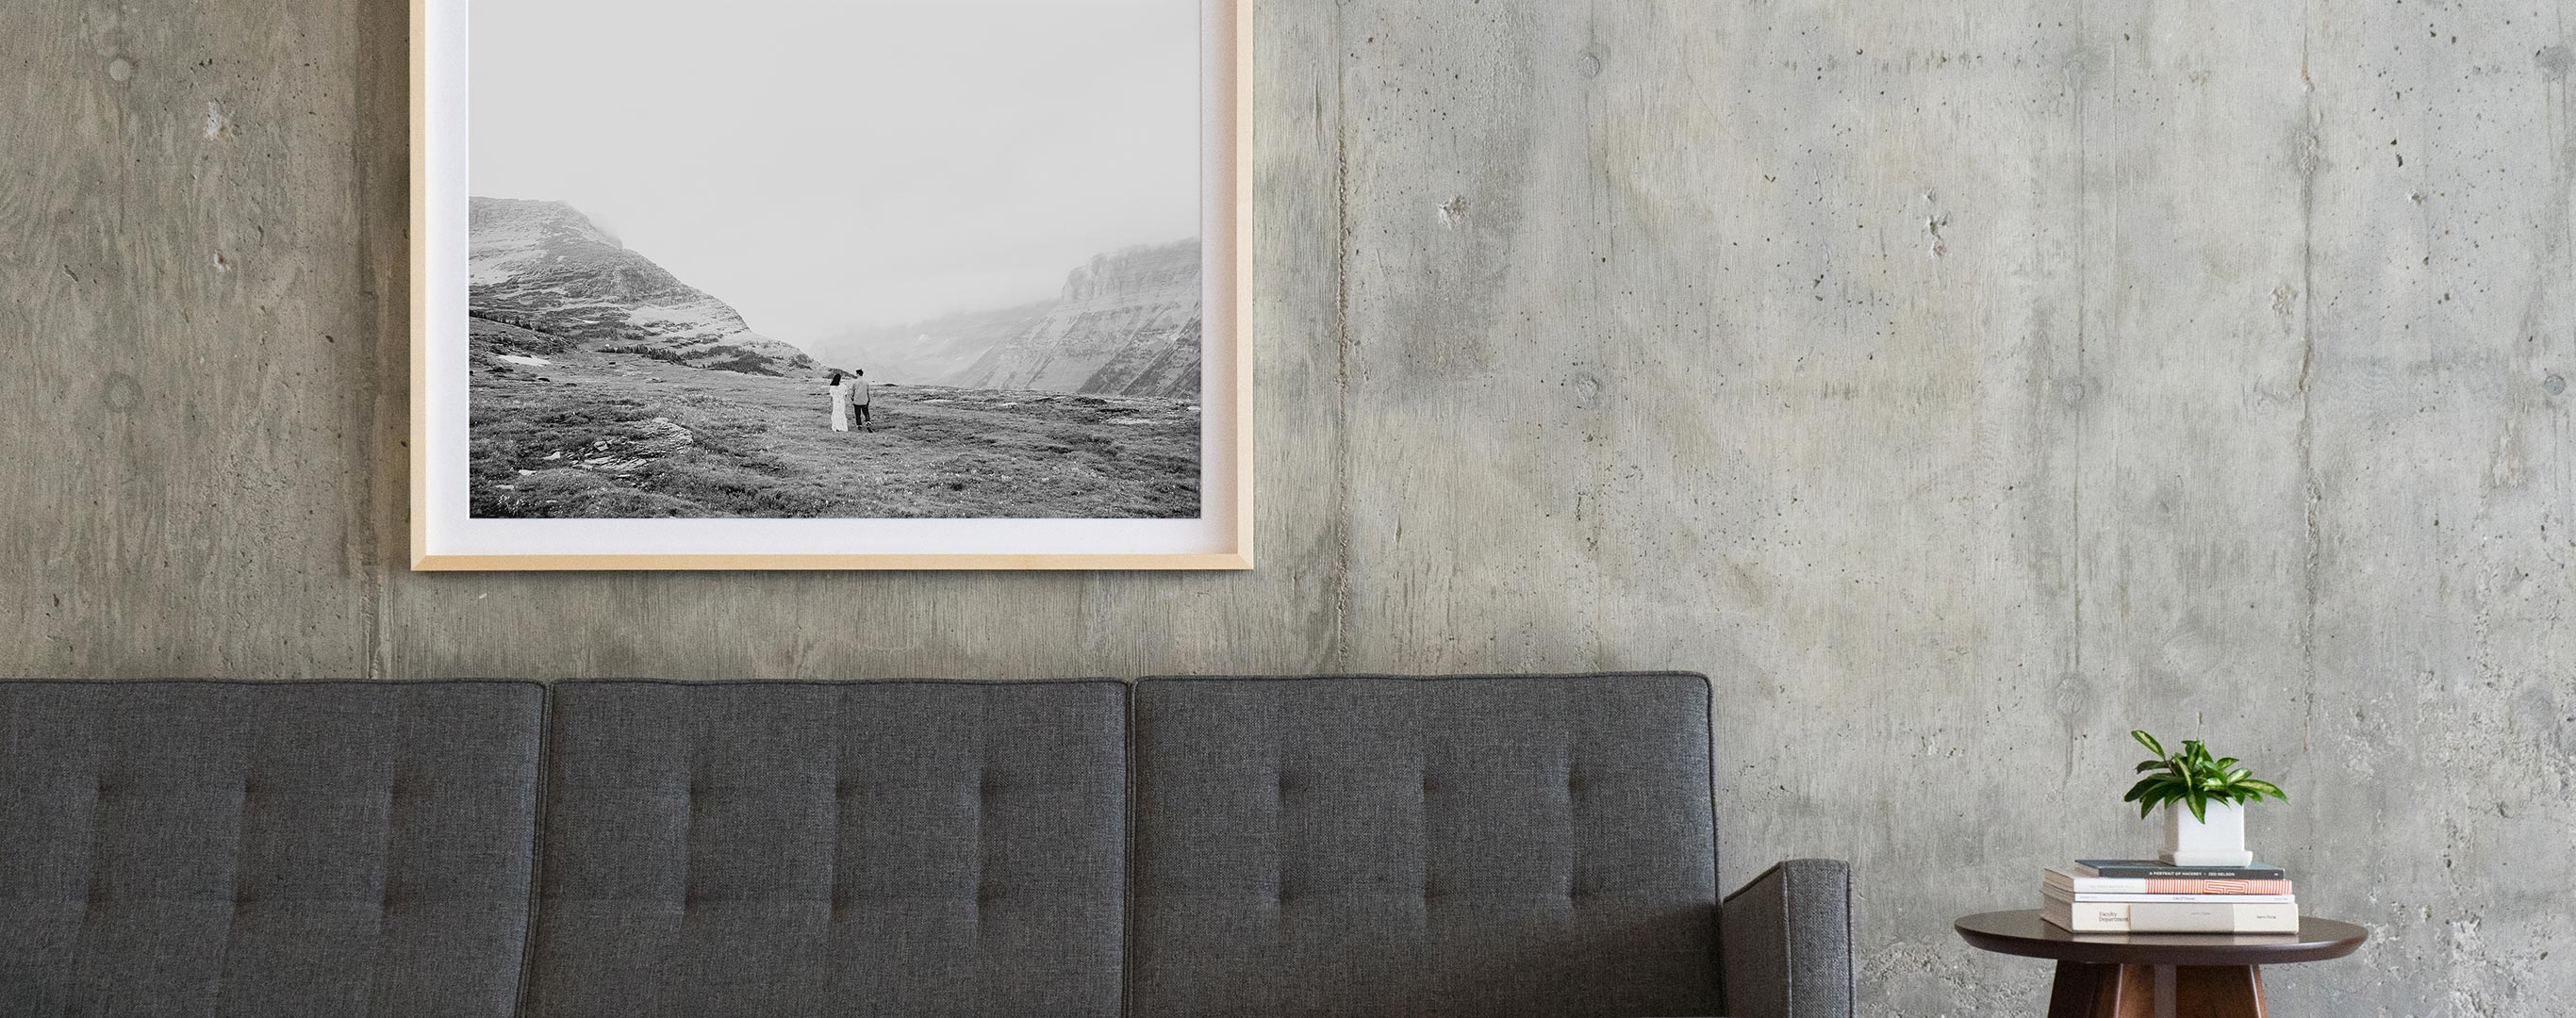 Black and white wall art hanging above a grey couch in a modern space